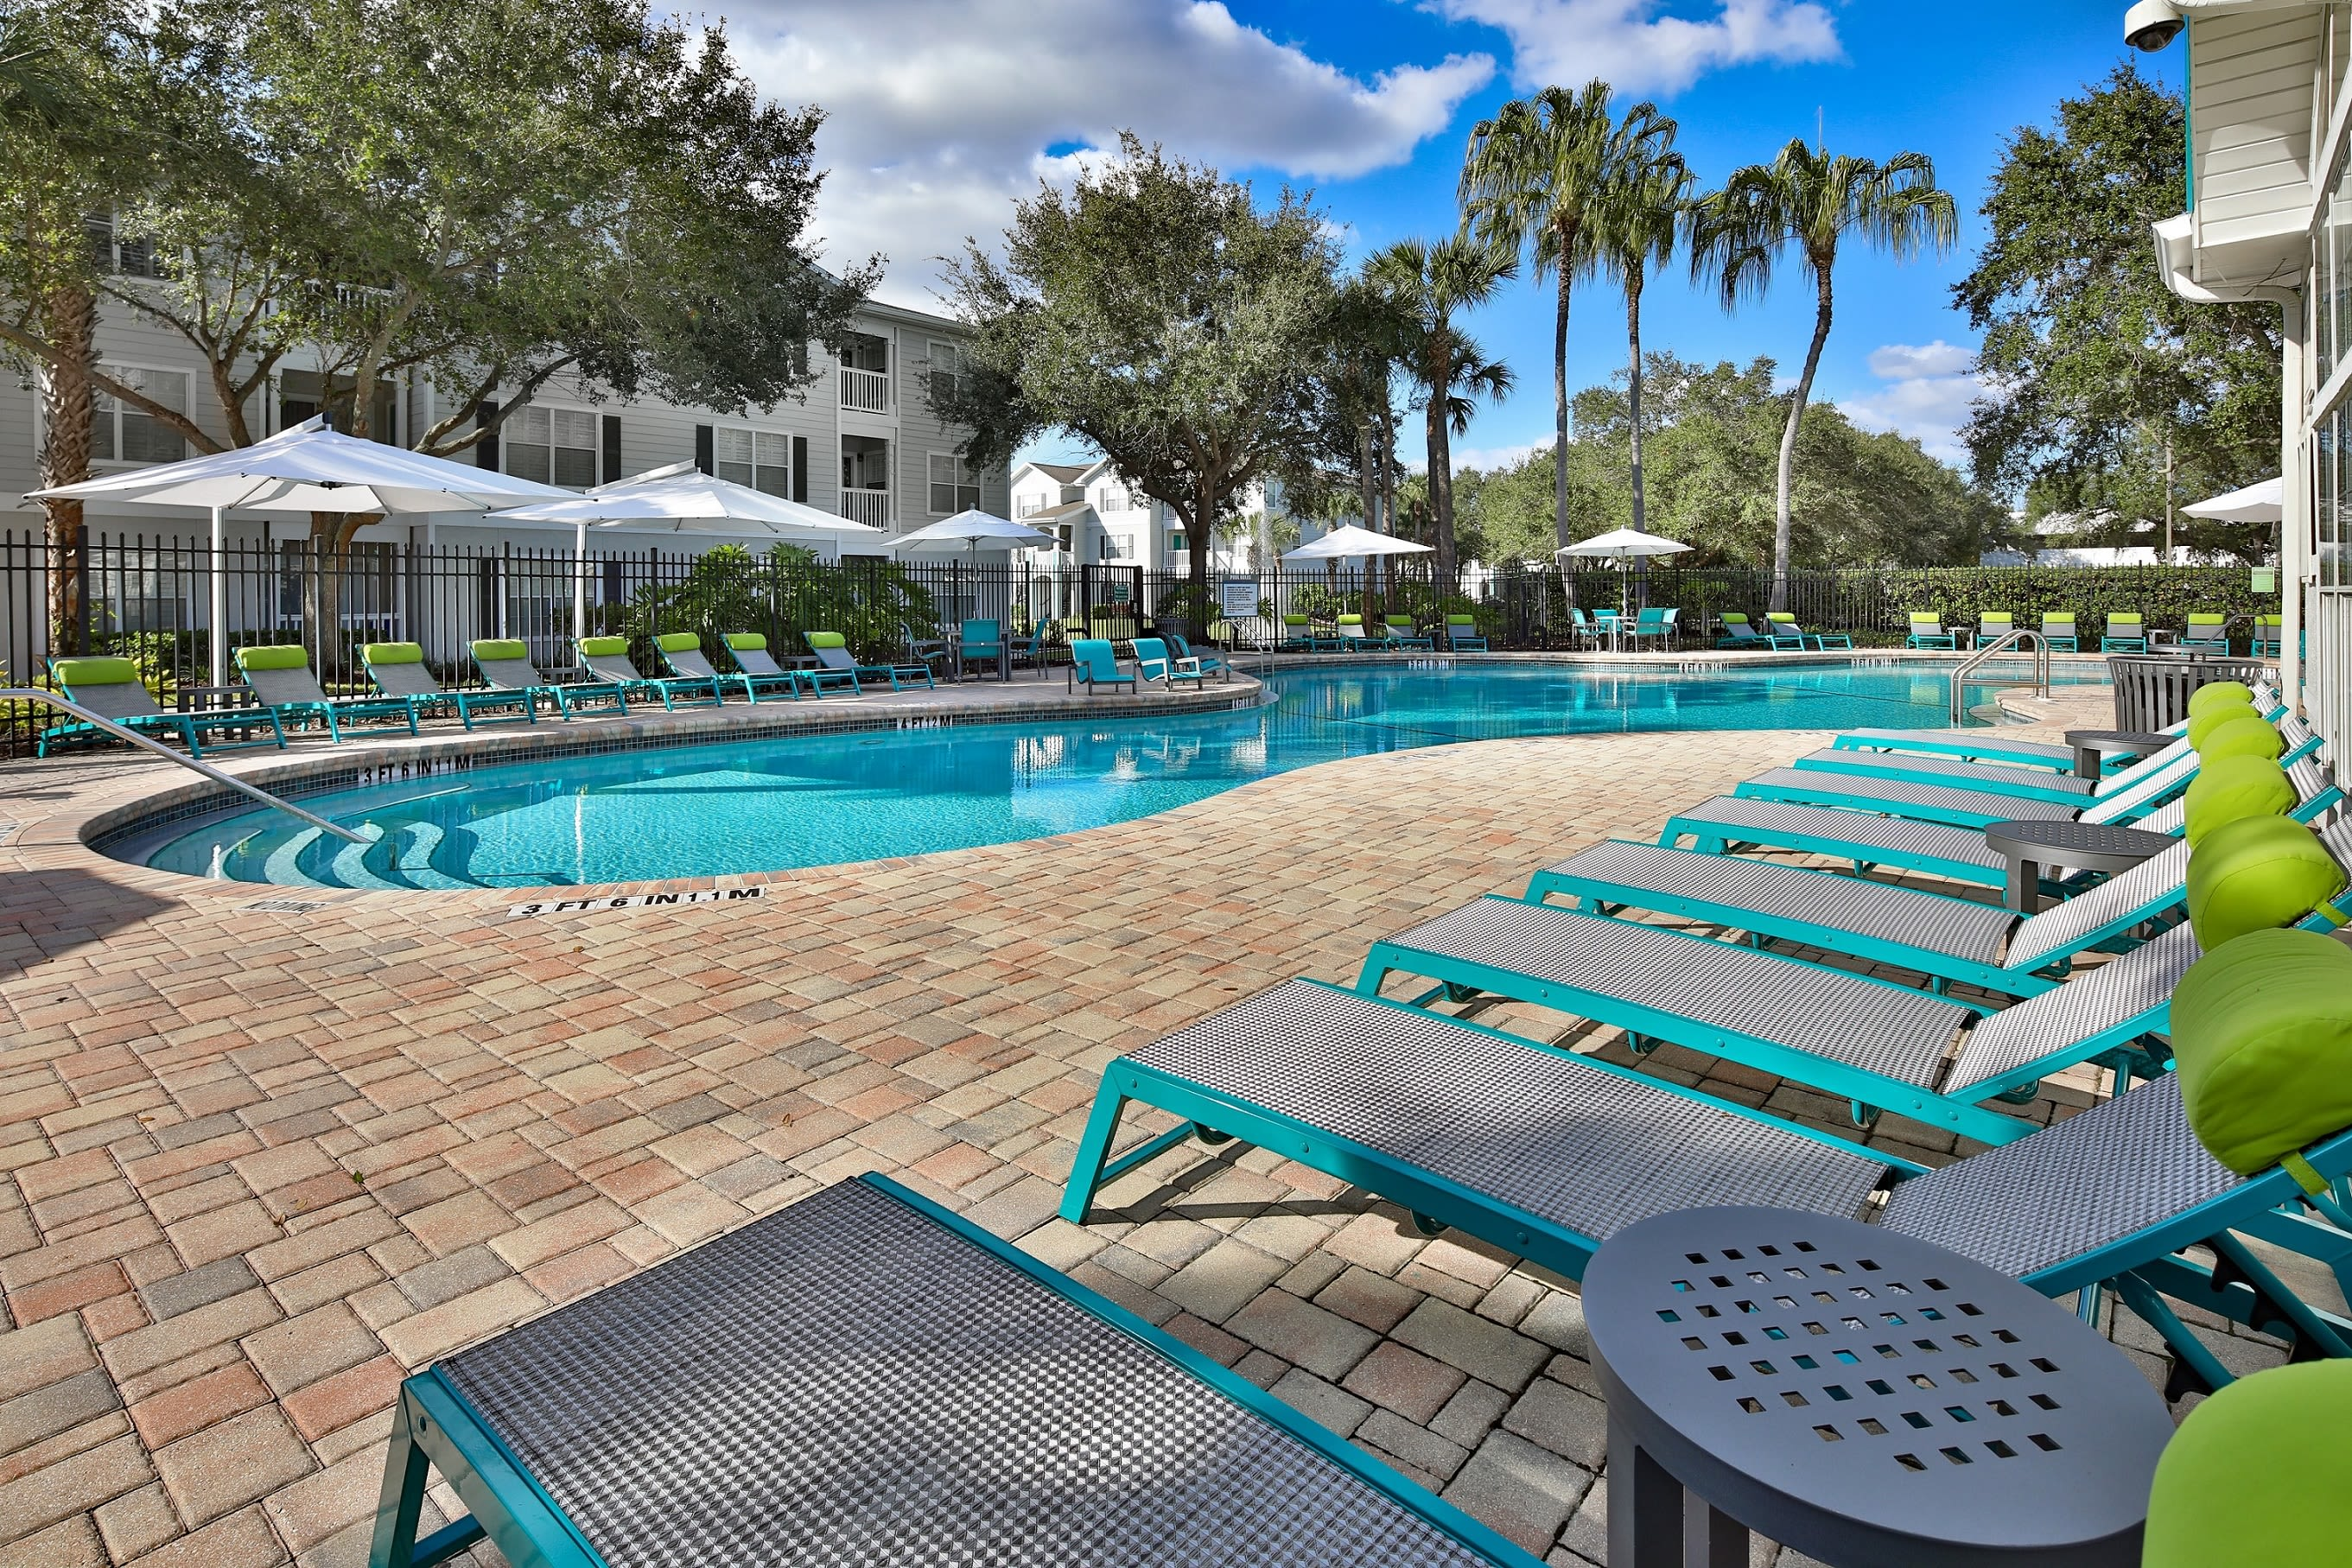 Lounge chairs by outdoor pool at Amira at Westly in Tampa, Florida